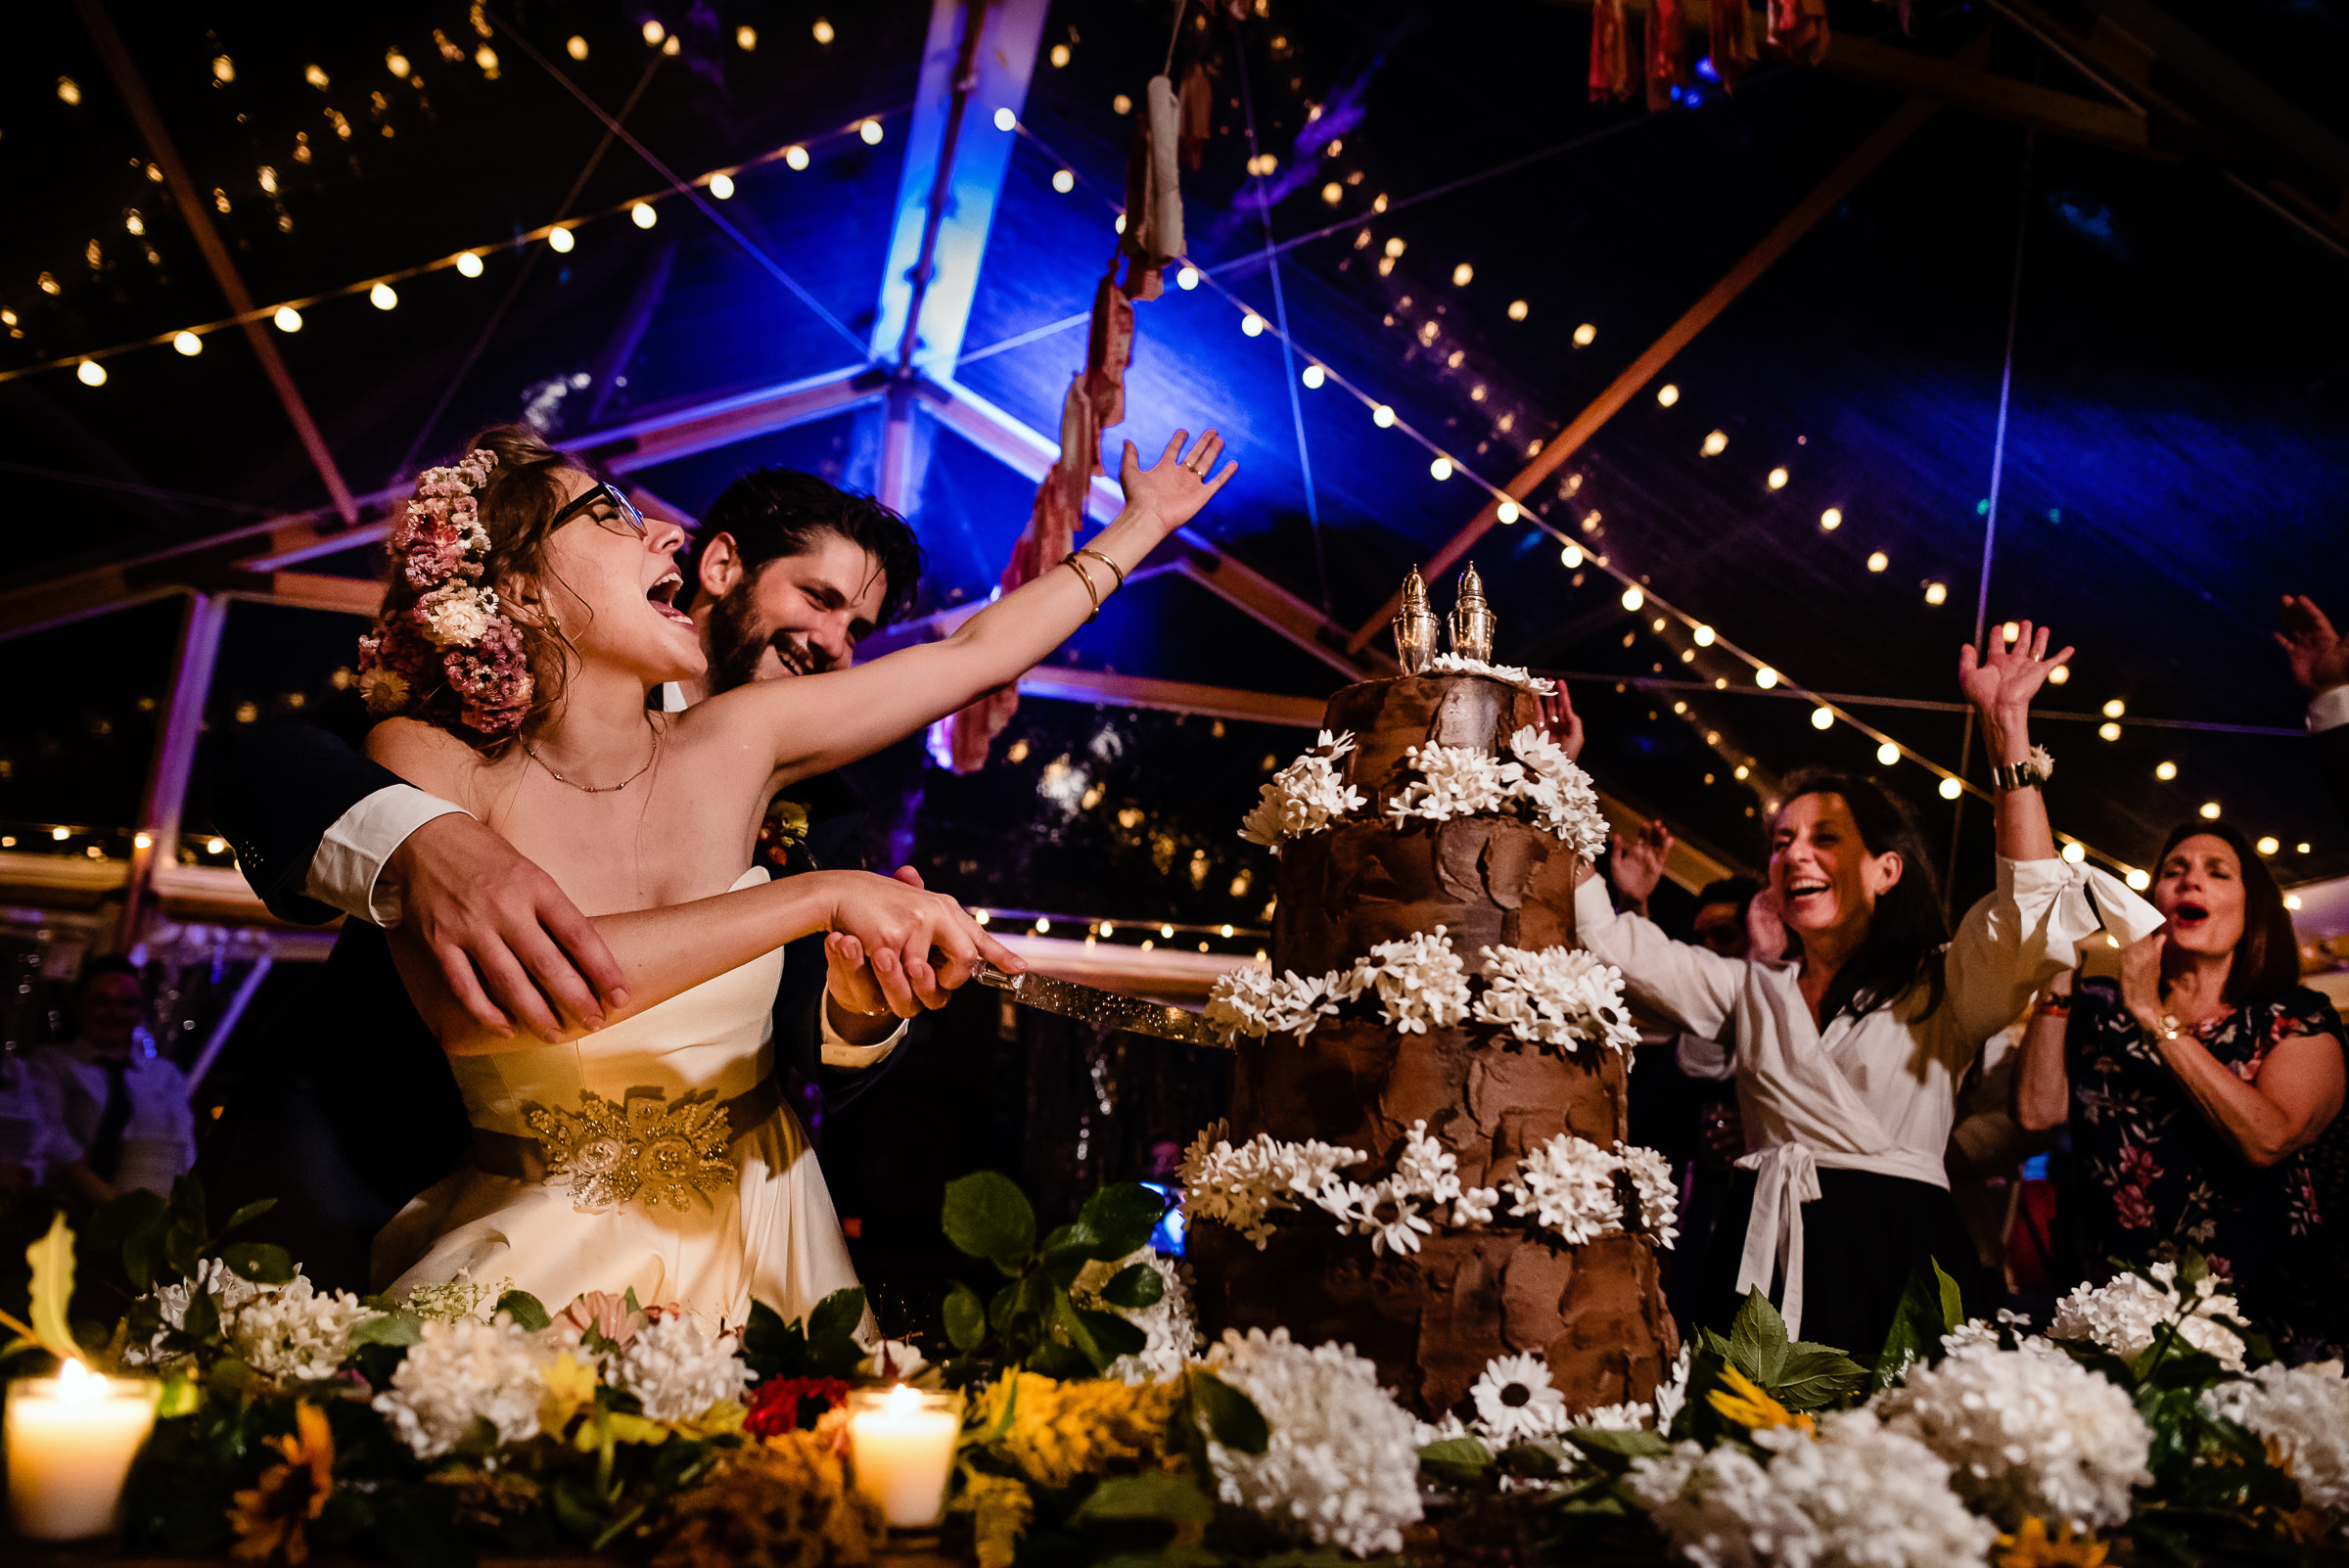 crazy fun bride and groom cake cutting - photo by Hannah Photography